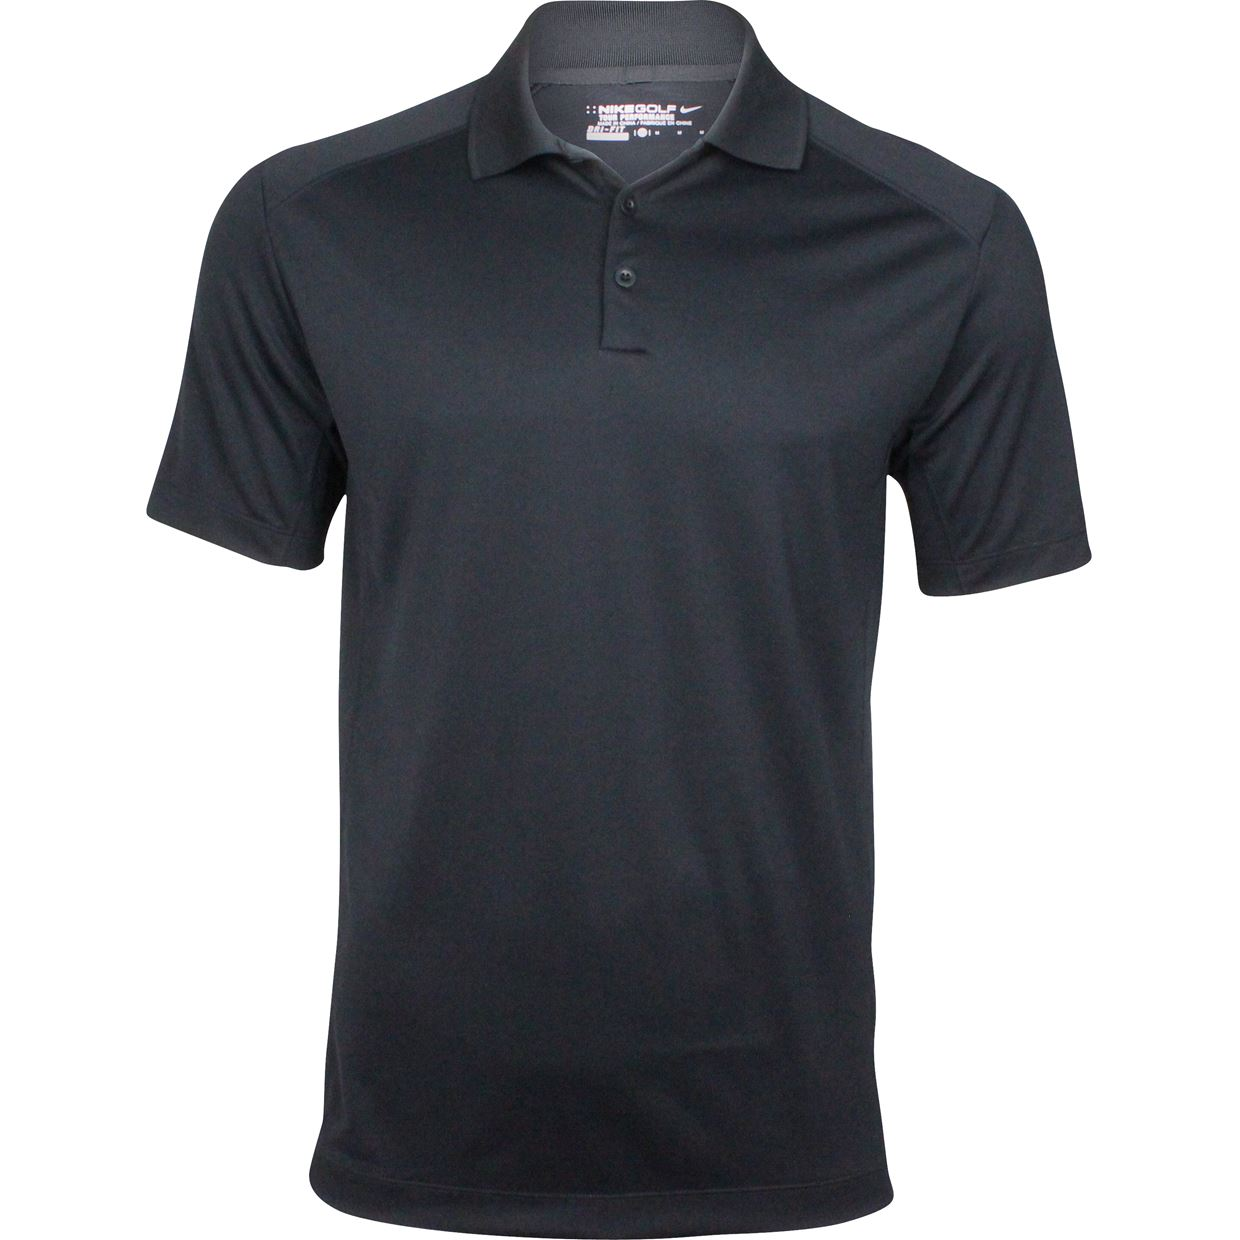 Nike Dri Fit Victory Polo Shirt At